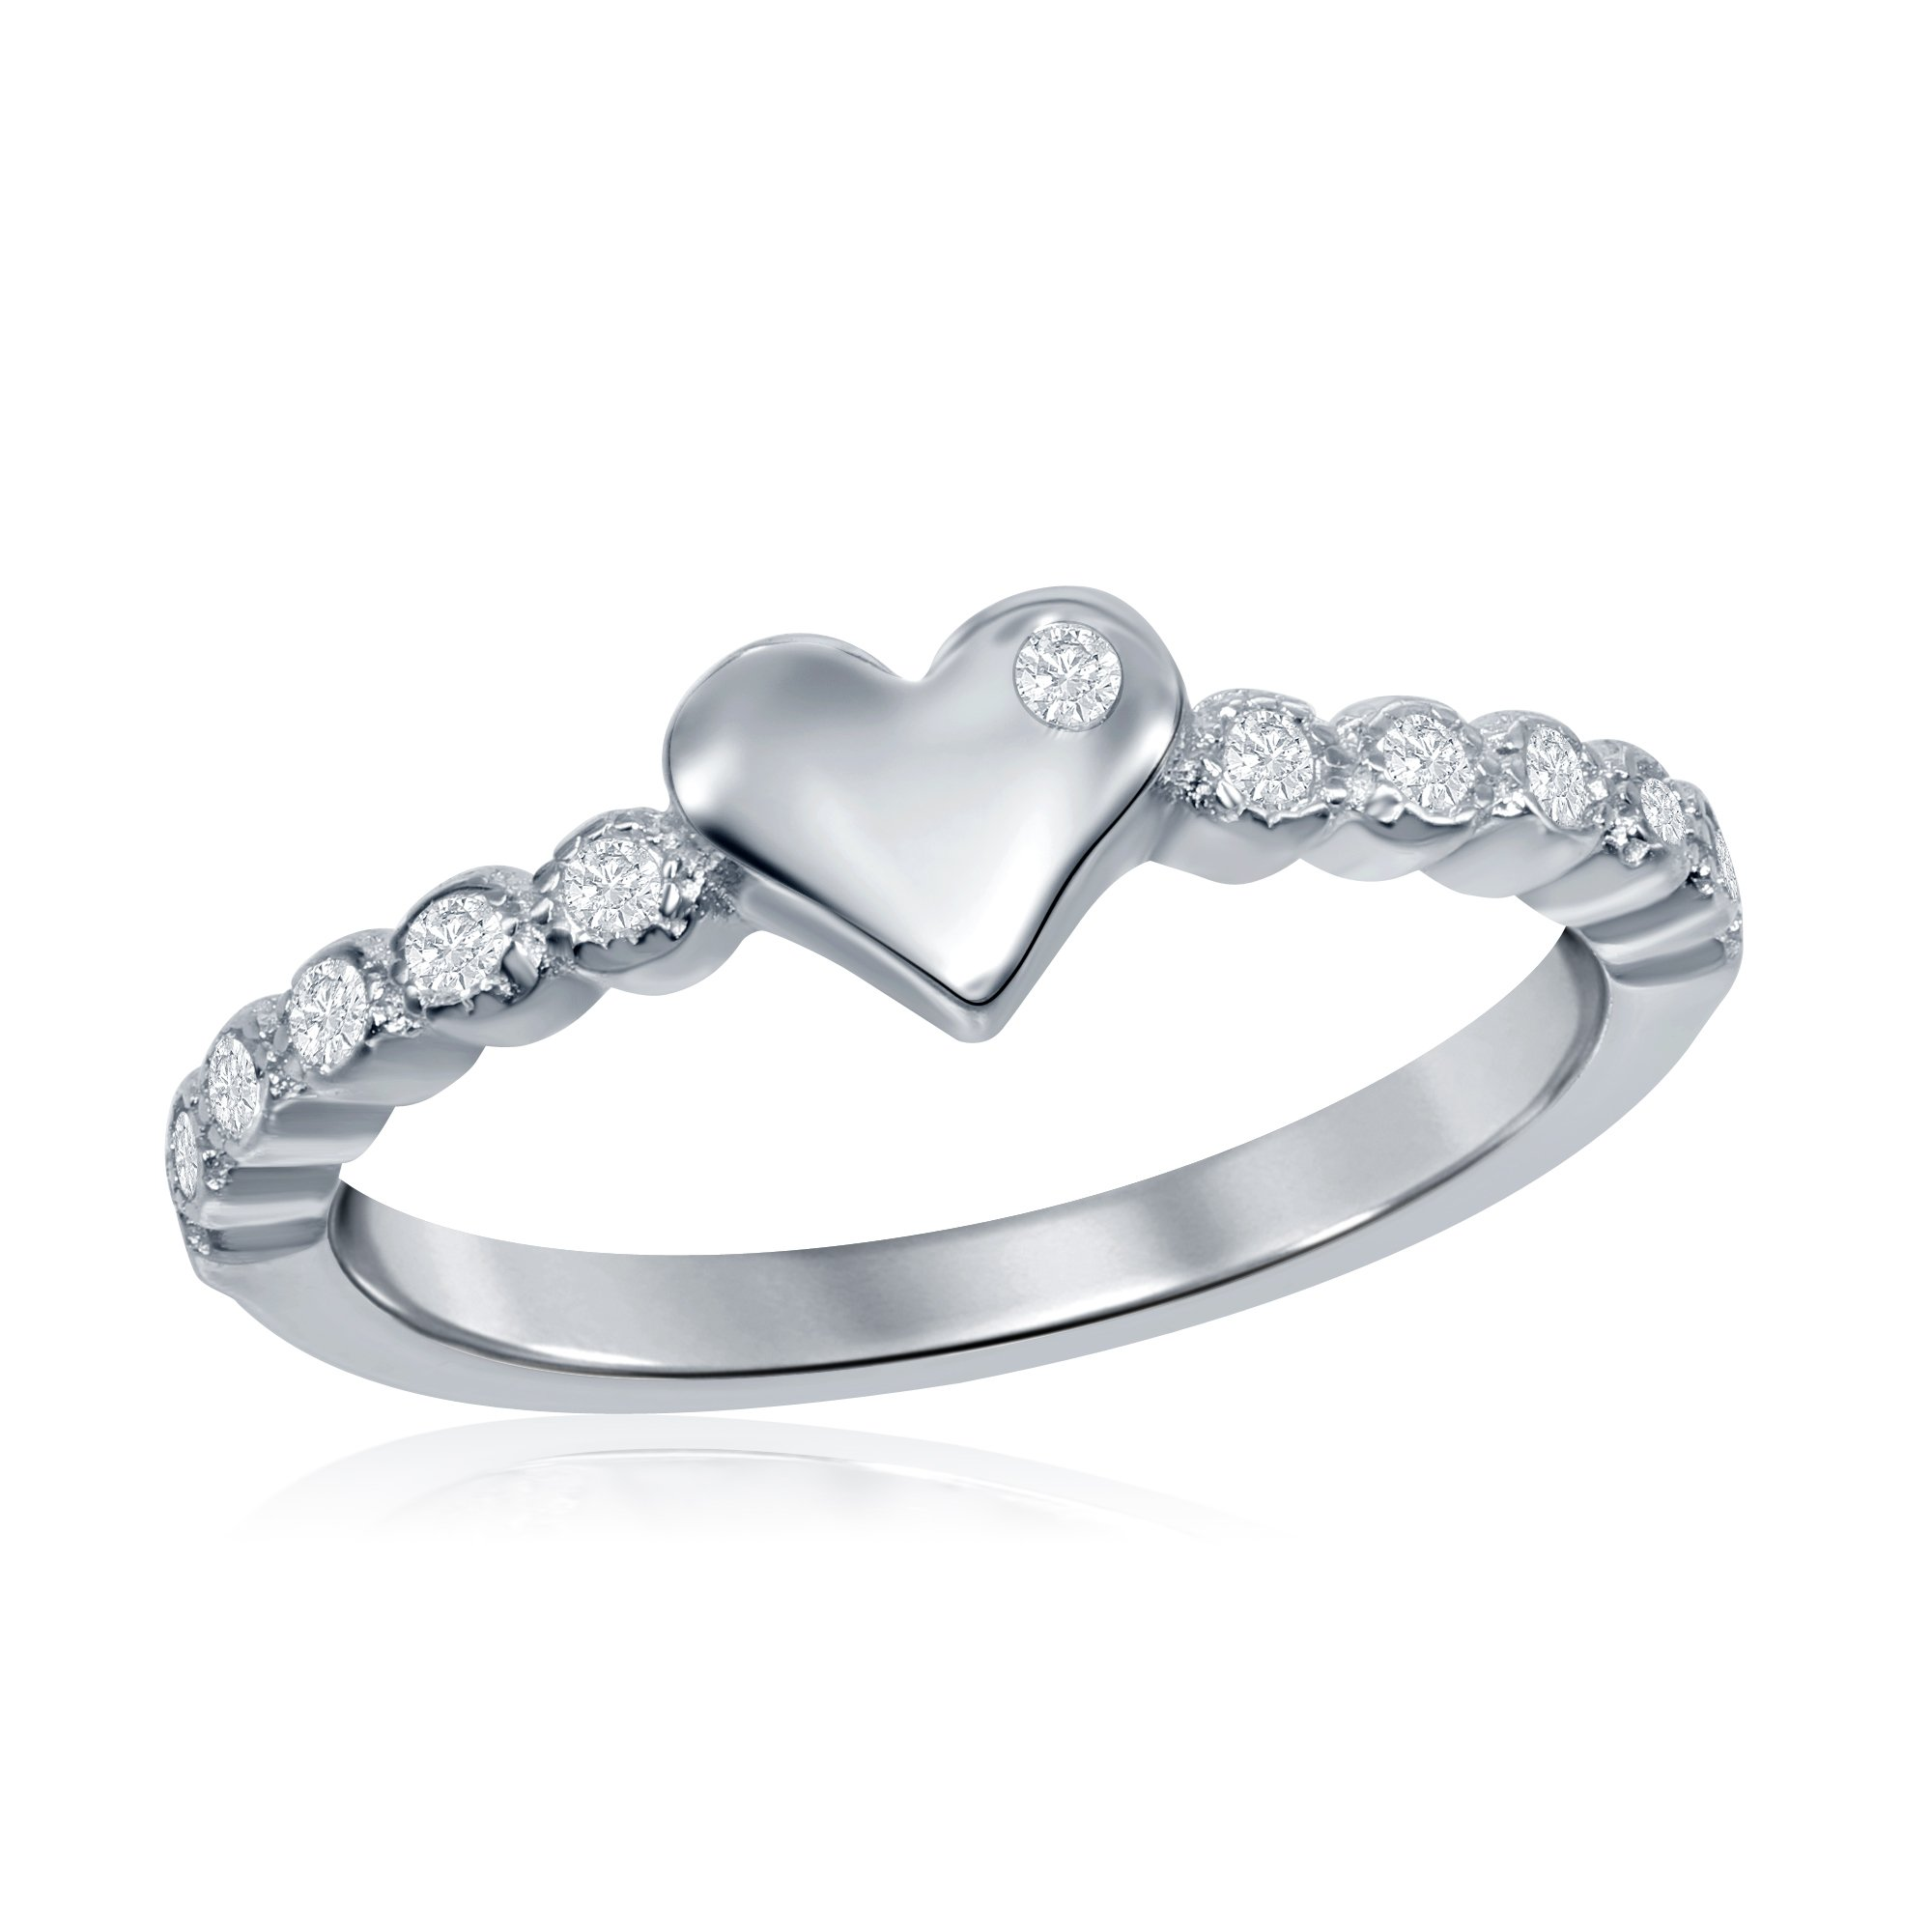 ad0c59bde OMG Jewelry Baby and Girls 925 Sterling Silver Cubic Zirconia Love Heart  Cute Ring Size 3